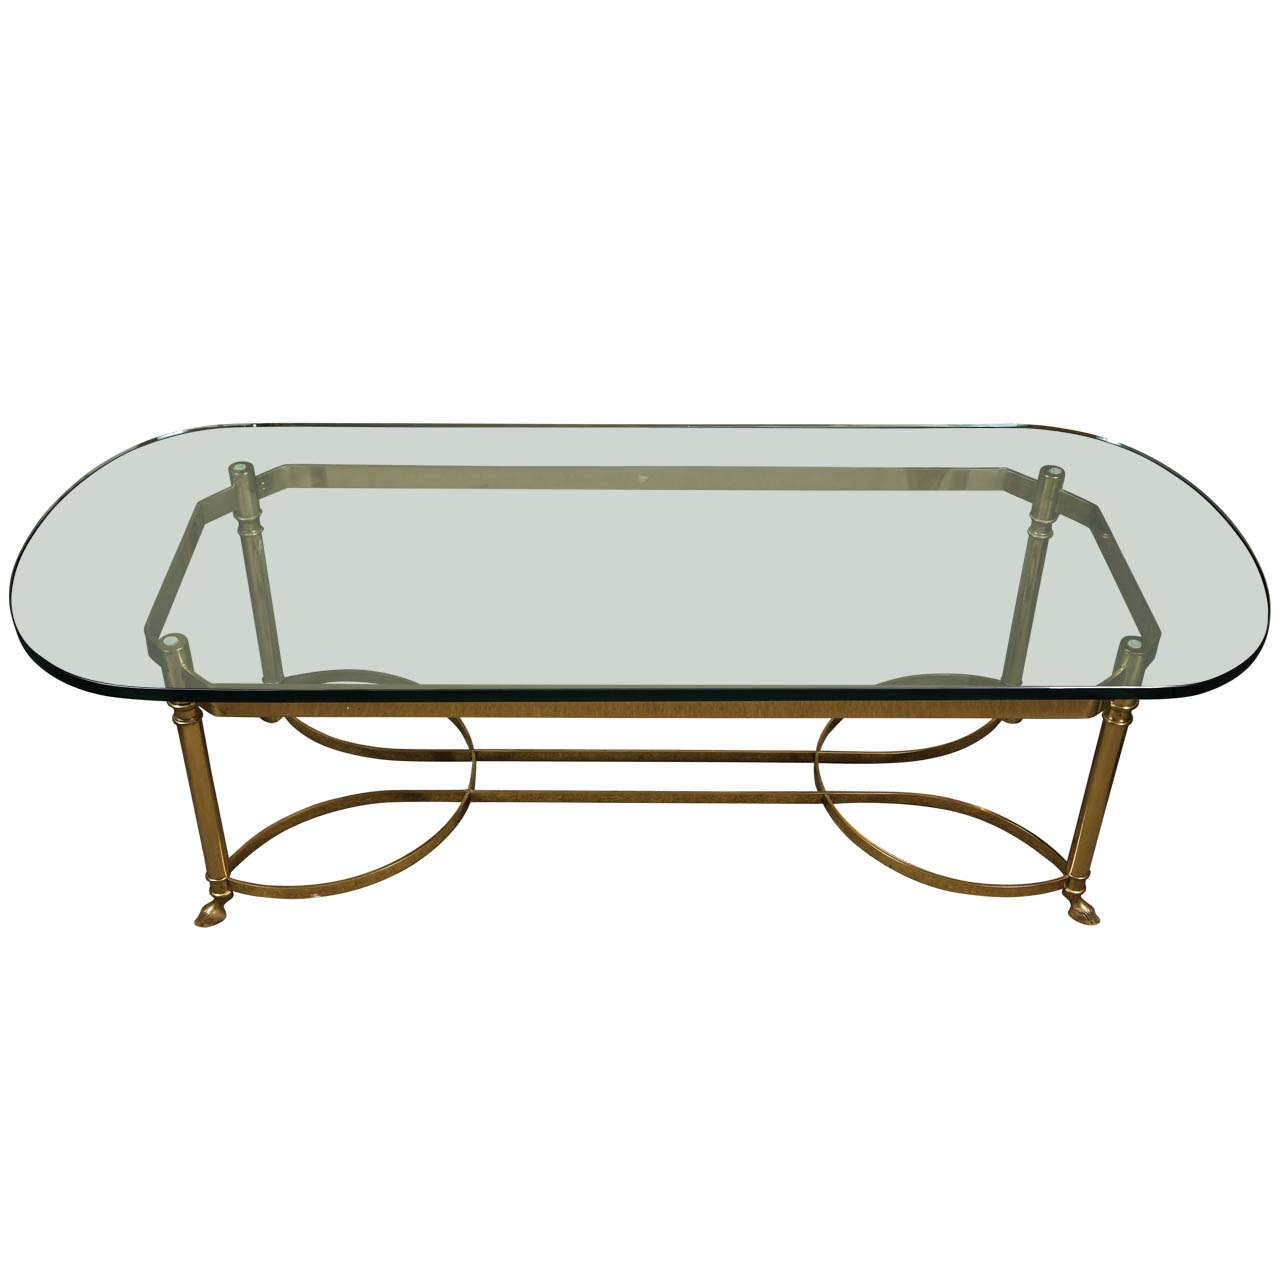 Glass Coffee Table Brass Base: Lovely Coffee Table With Brass Base And Glass Top At 1stdibs